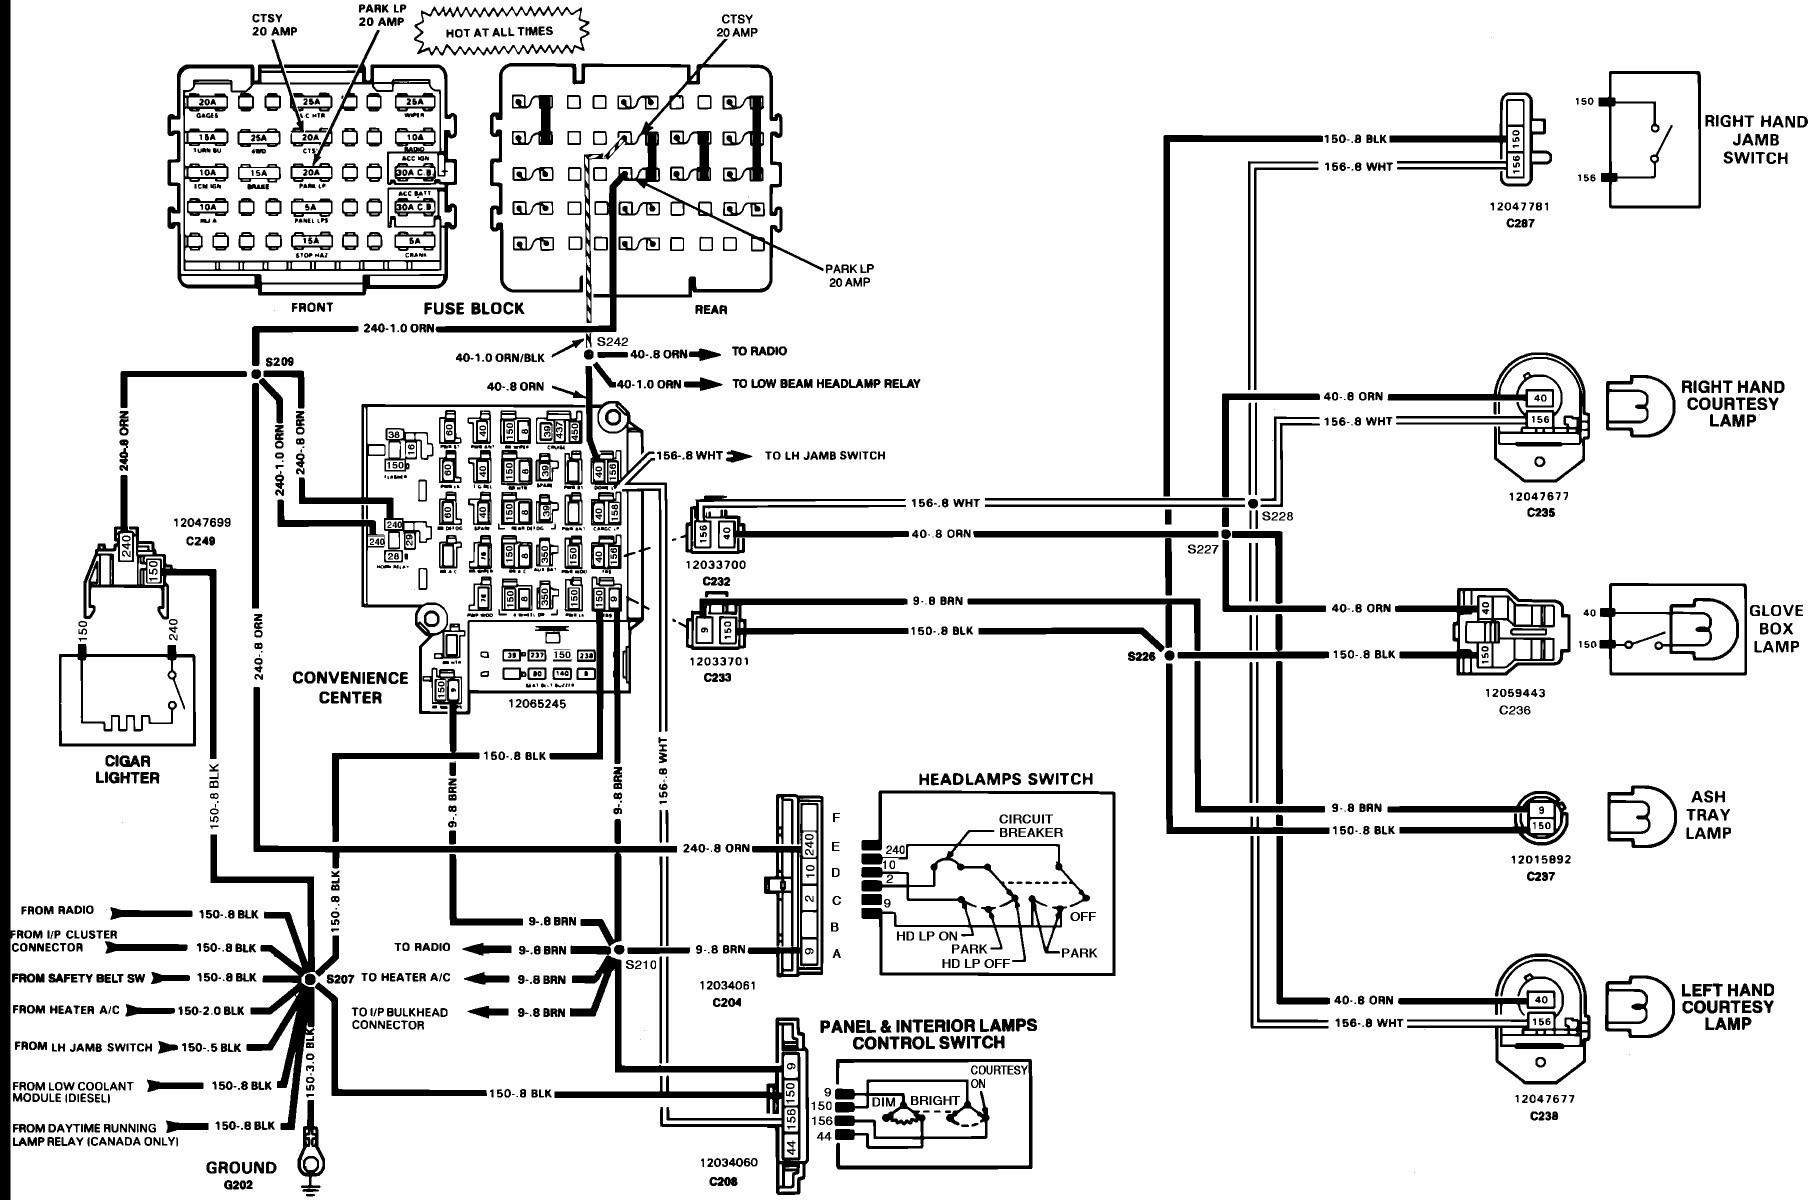 H6456 Wiring Diagram | Wiring Diagram on 3 wire headlight wiring diagram, spark plug wiring diagram, h4 headlight socket wiring diagram, radio wiring diagram, h6054 wiring diagram, h4656 wiring diagram,